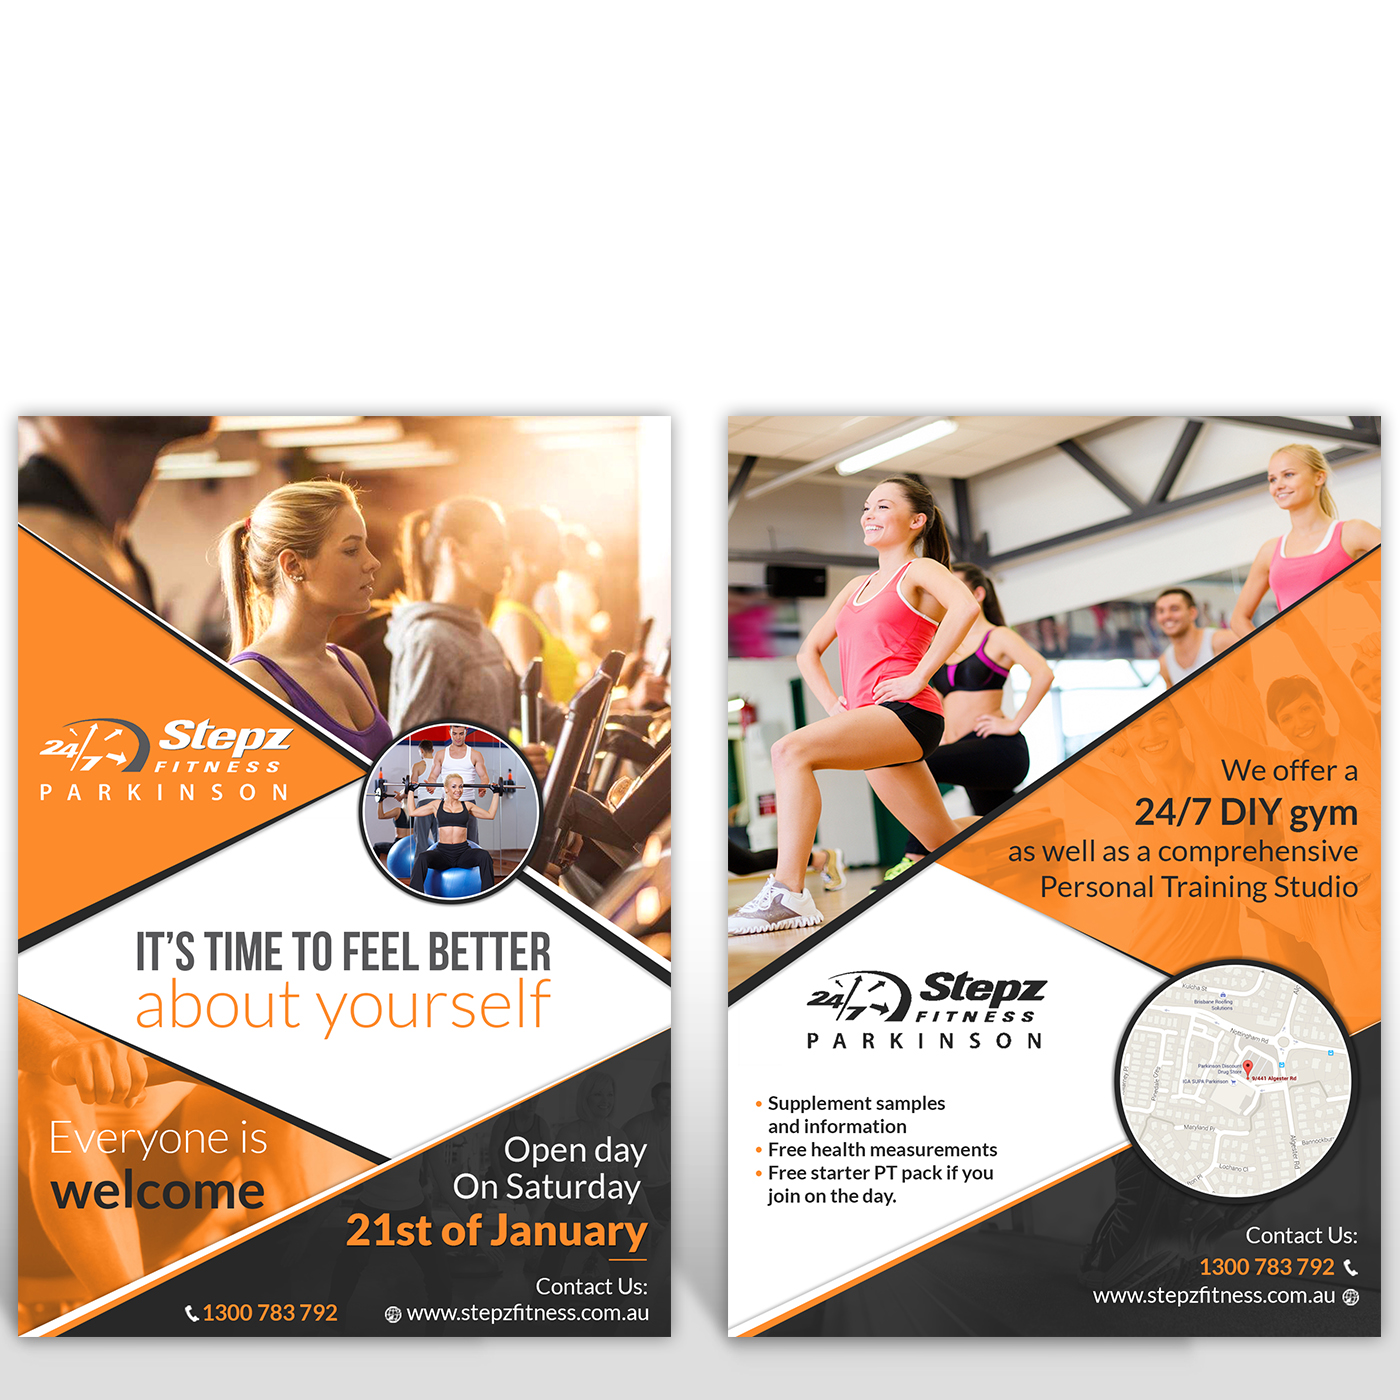 Elegant Playful Health Poster Design For A Company By: Elegant, Playful, Gym Flyer Design For Stepz Fitness